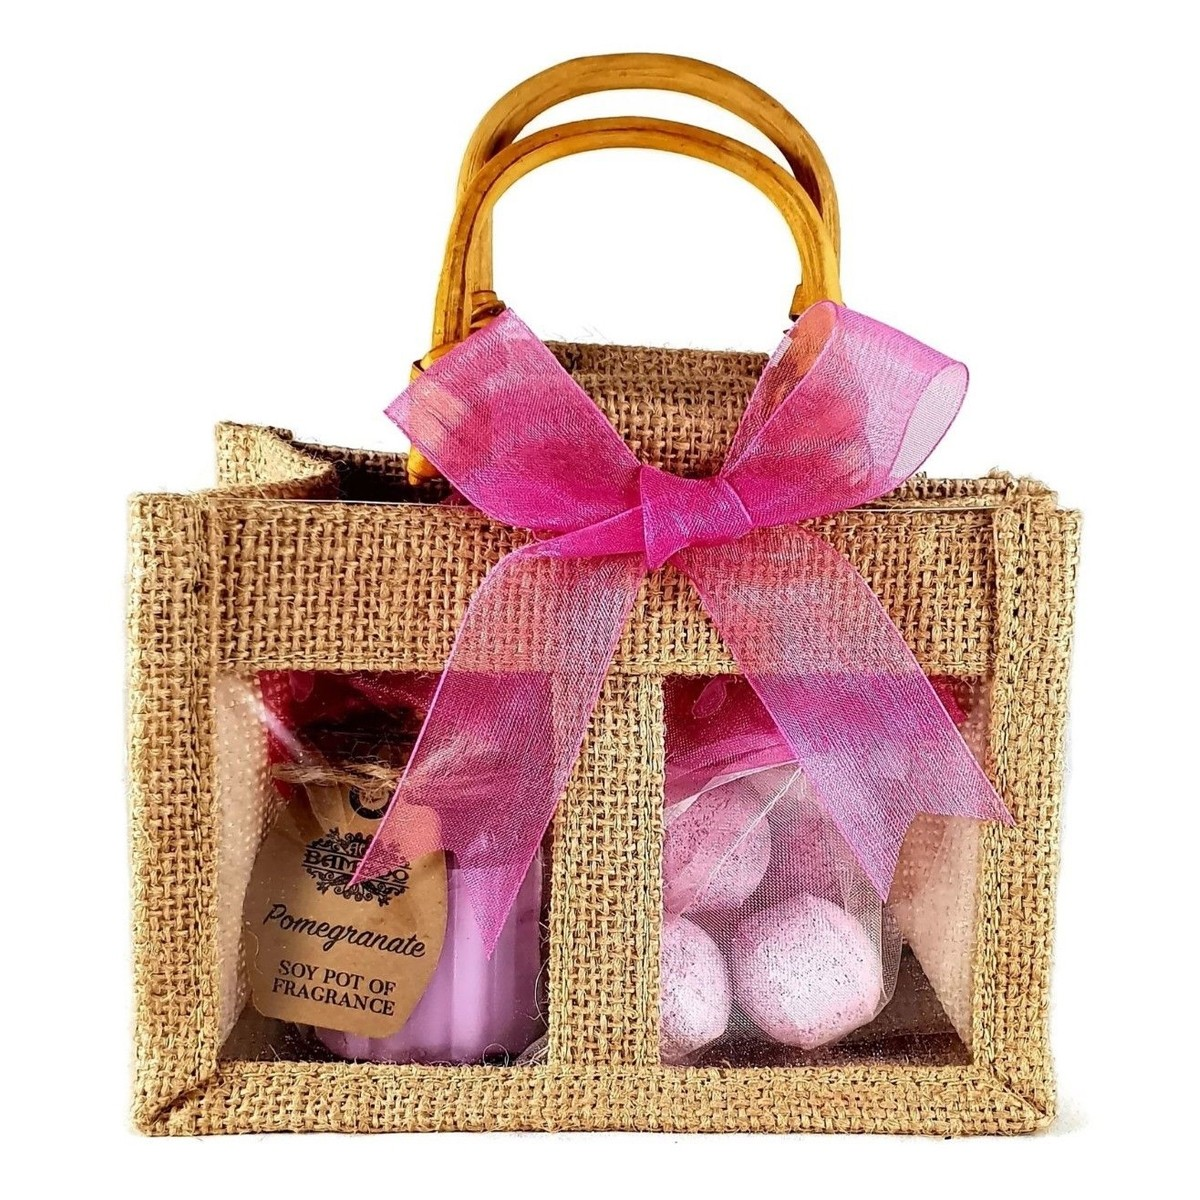 Chill Pills Bath Bombs & Candle Jute Bag Set